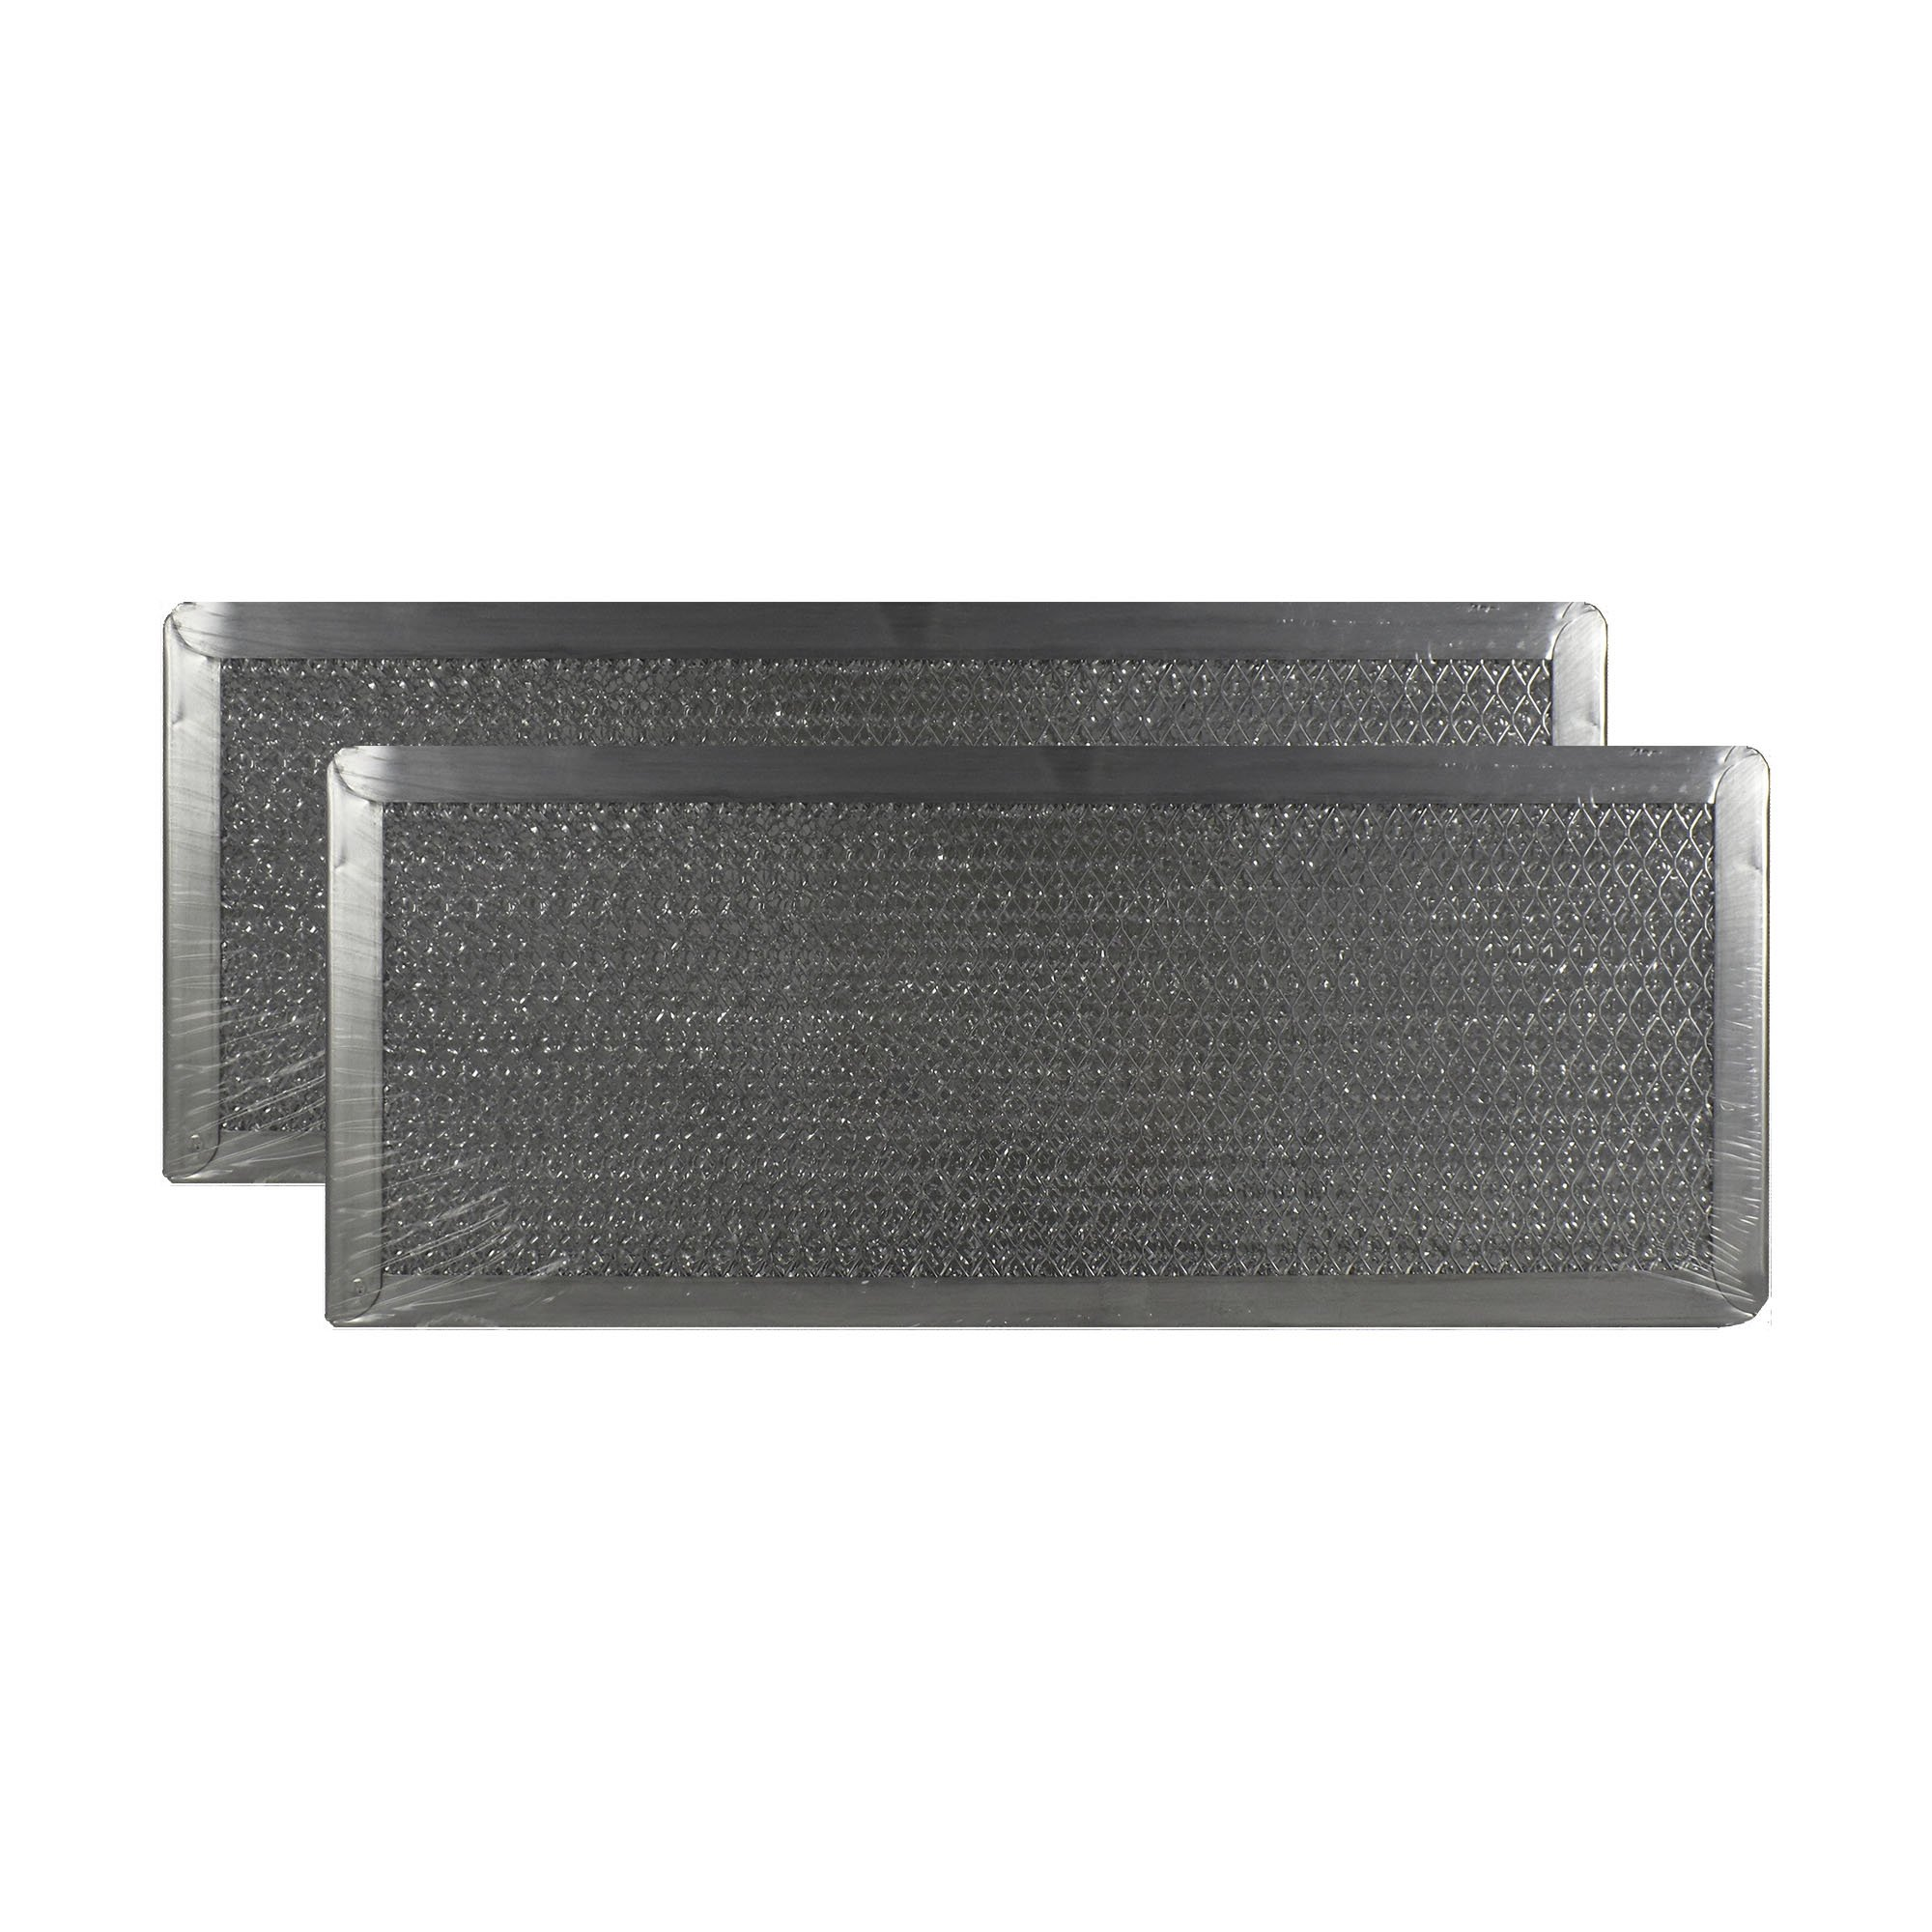 2 PACK Air Filter Factory 5'' X 12-1/2'' X 3/32'' Range Hood Aluminum Grease Filters AFF97-M